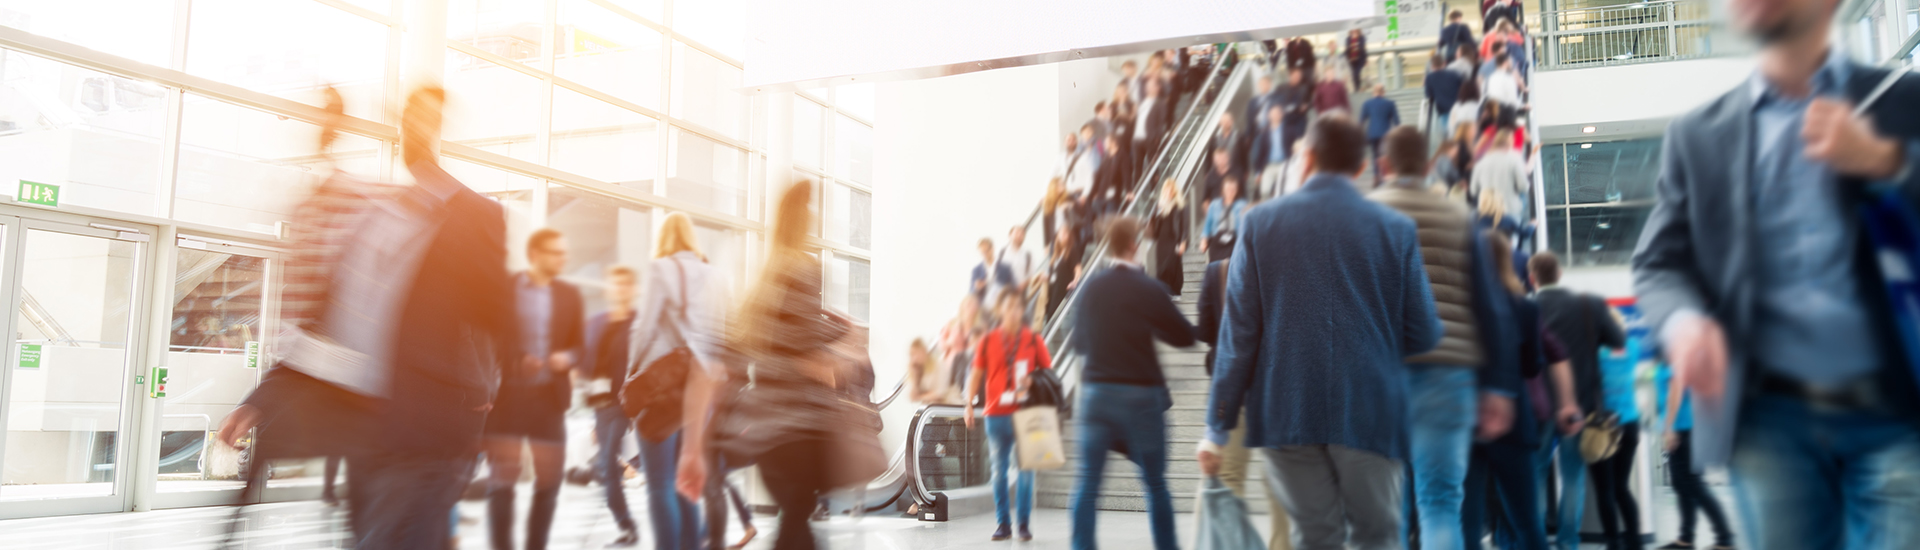 4 Tactics to Improve Your Manufacturing Trade Show ROI in 2021